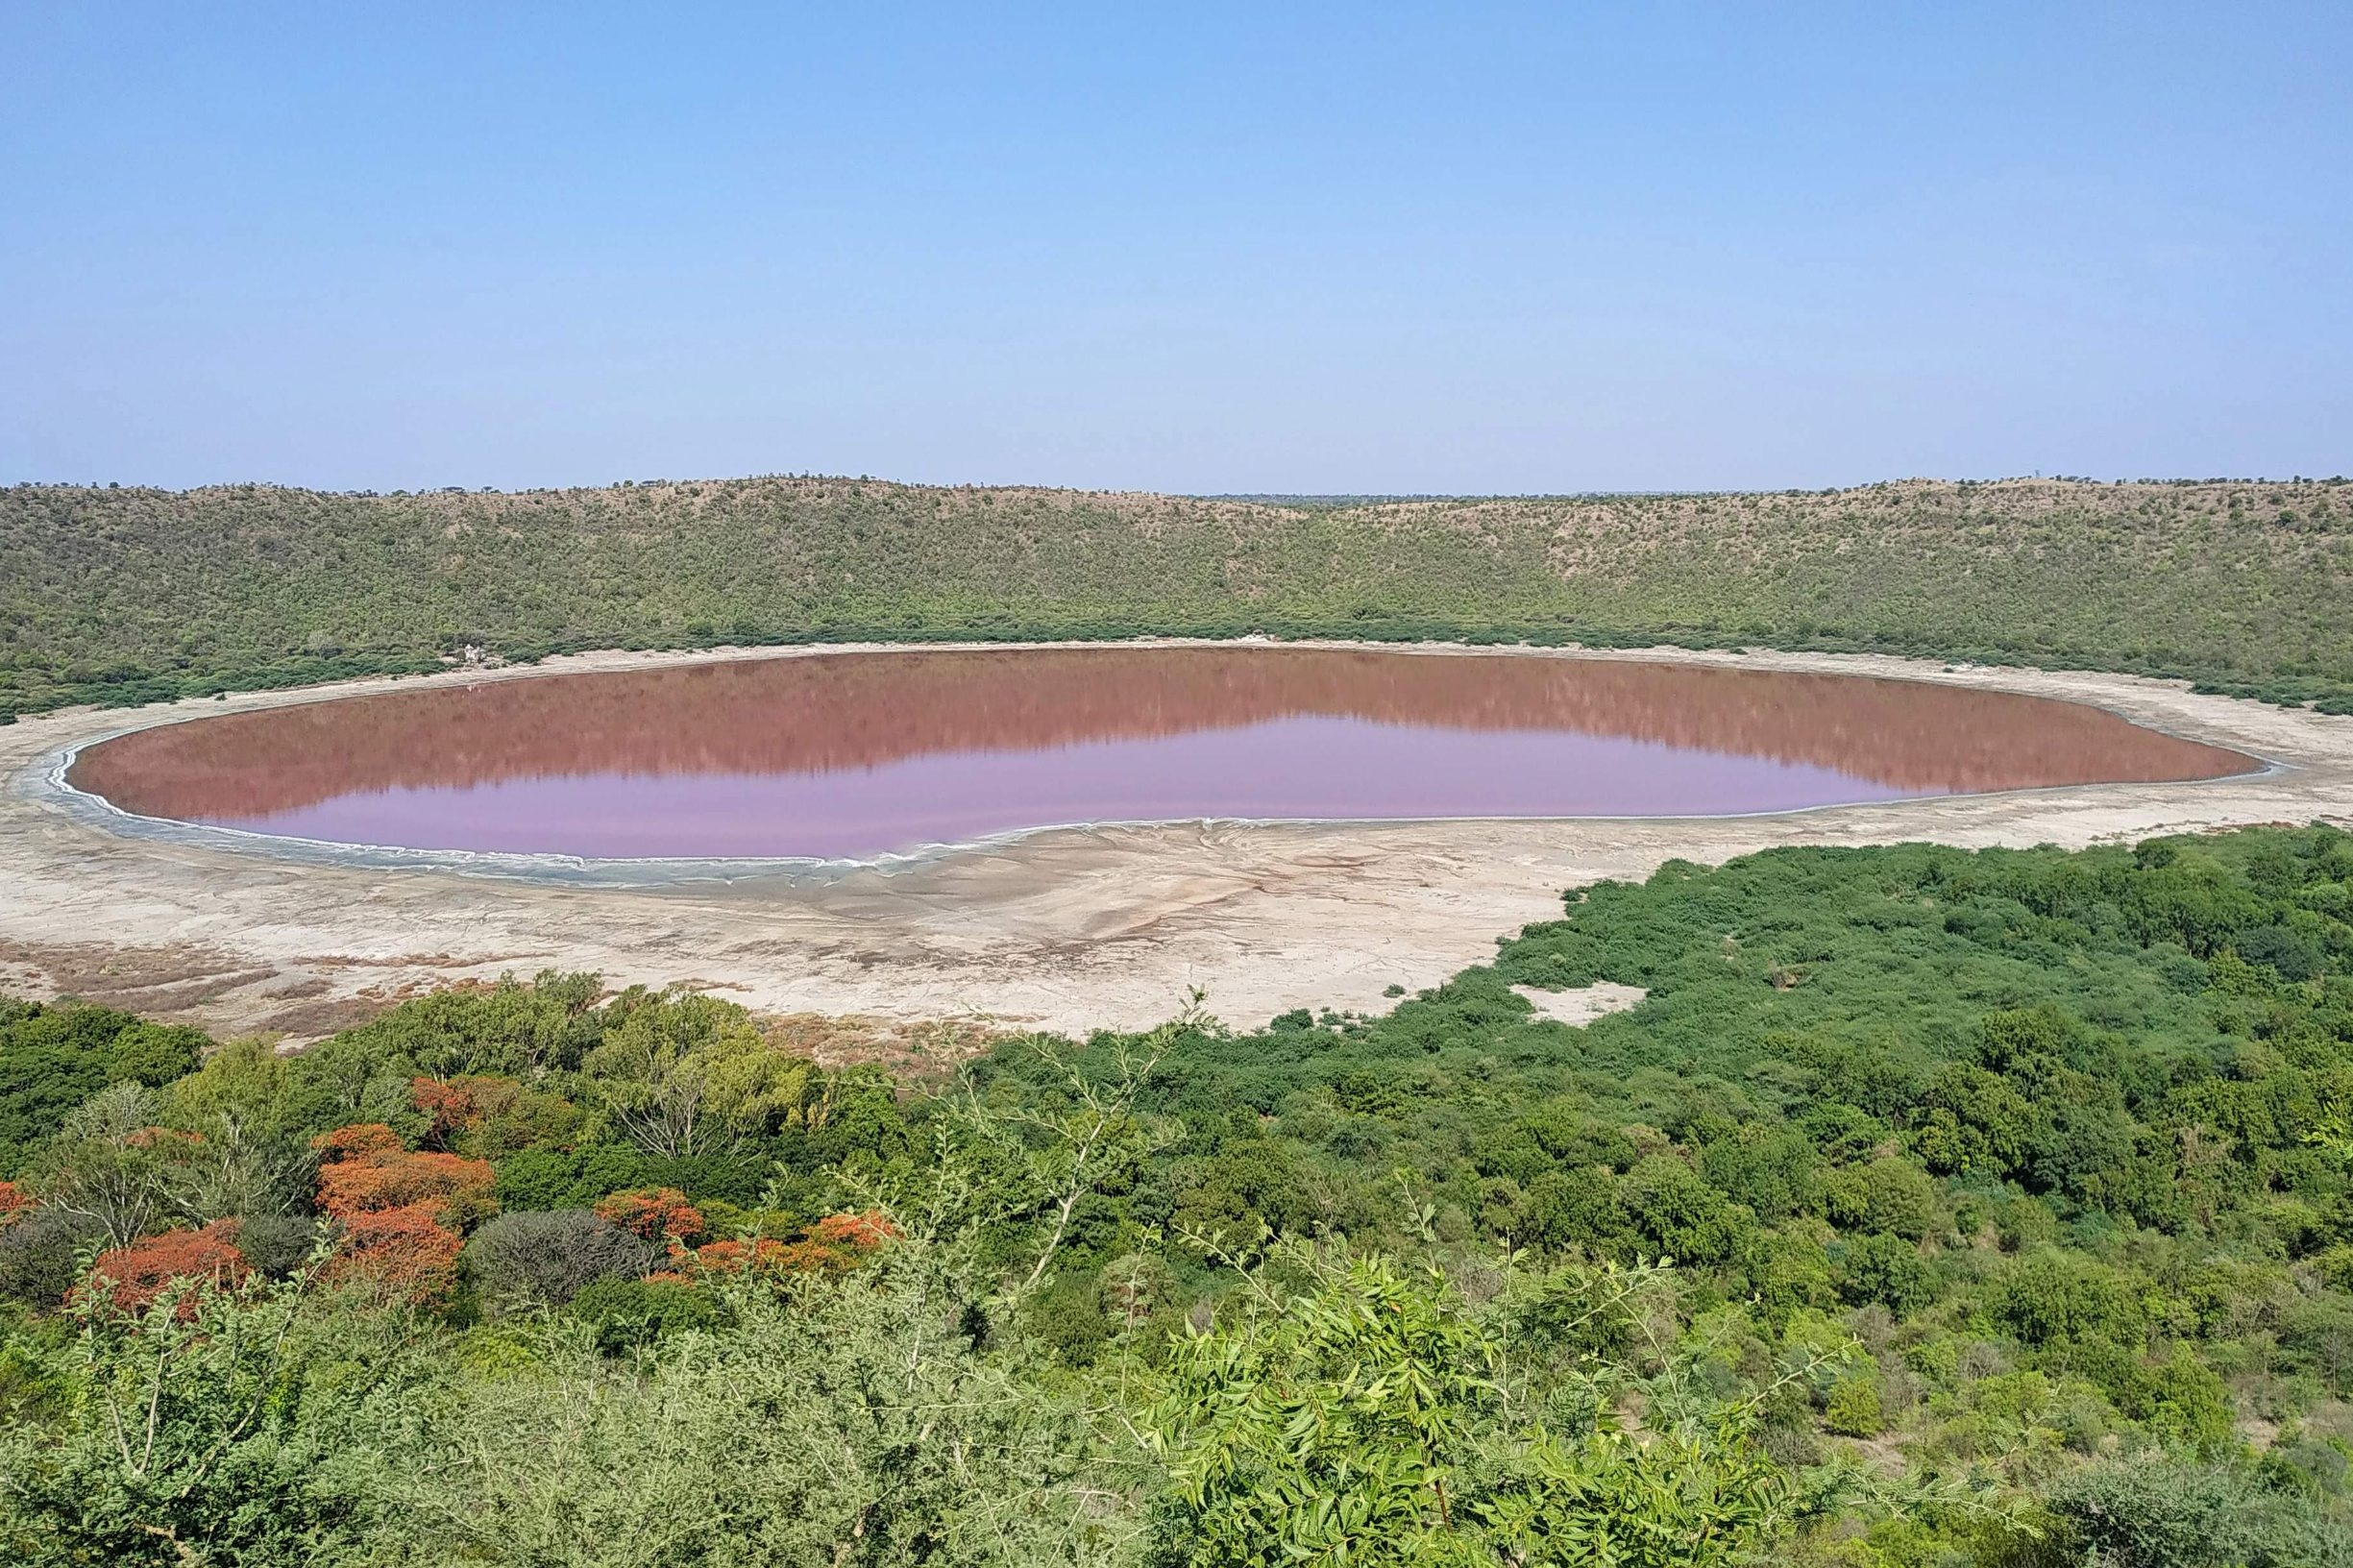 A general view of Lonar crater sanctuary lake is pictured in Buldhana district of Maharashtra state on June 11, 2020. - The lake has turned pink in colour which is believed that when the water level goes down, the salinity increases and warm water gives a rise to algae that tends to absord sunlight and changes the colour of the water, local media reported. (Photo by STR / AFP)